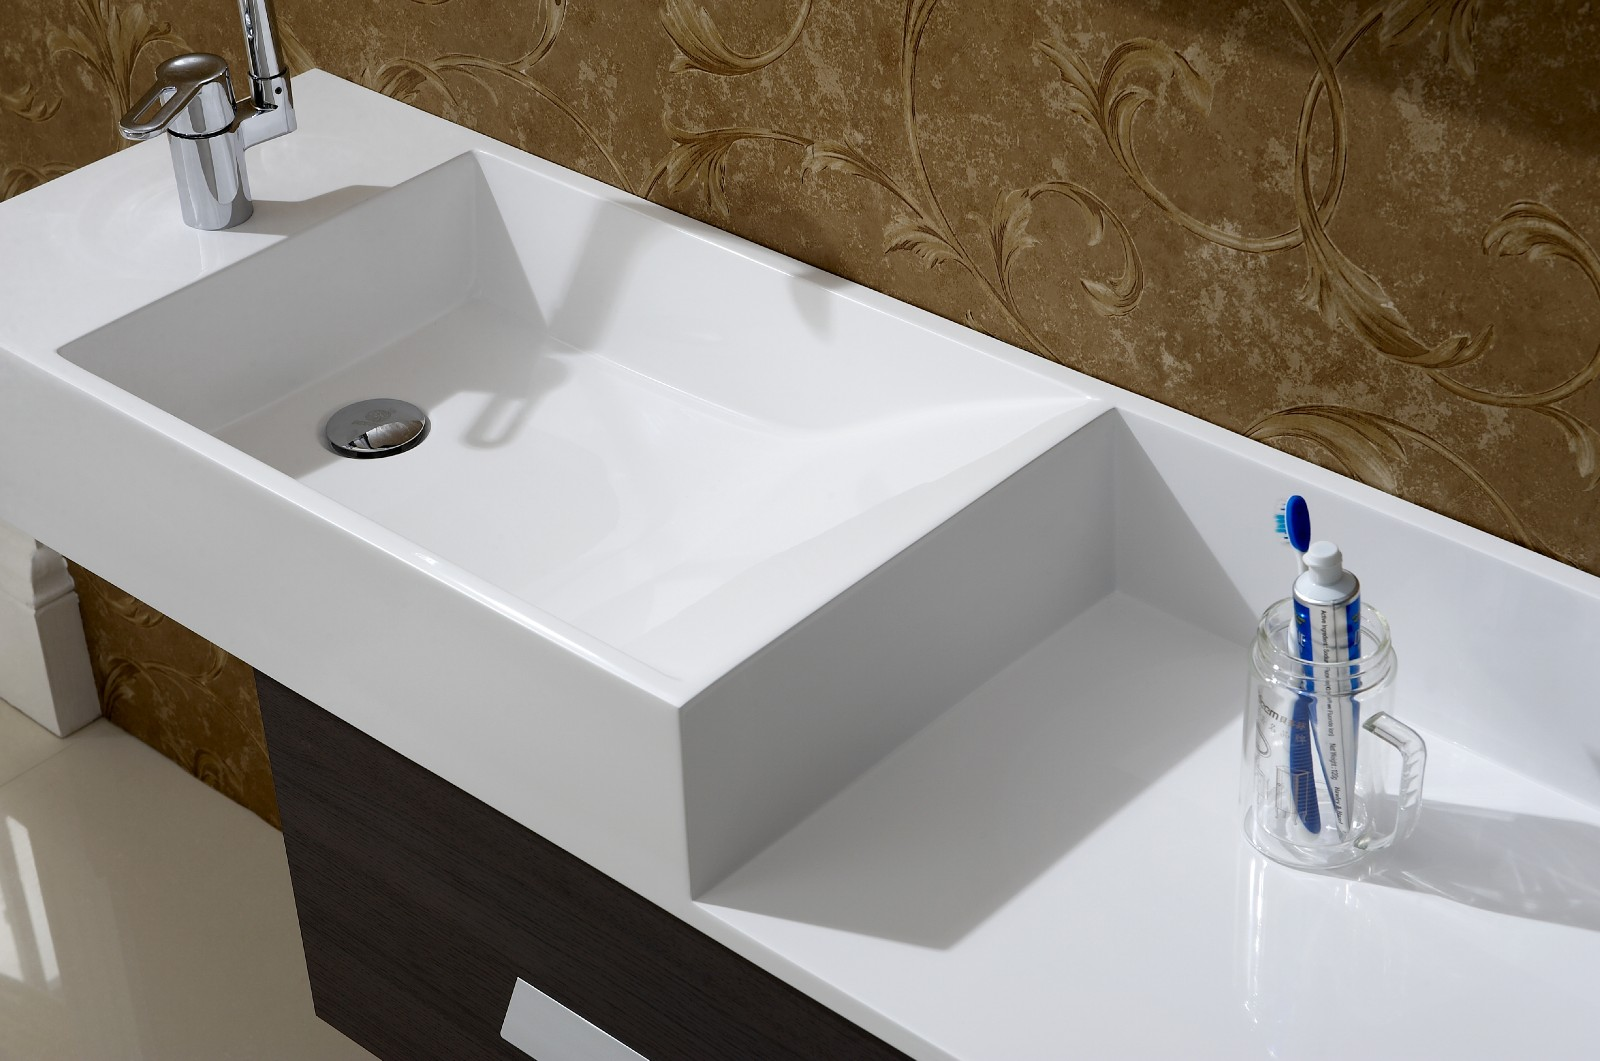 Modern bathroom vanity aviateur for Modern bathroom sink and vanity